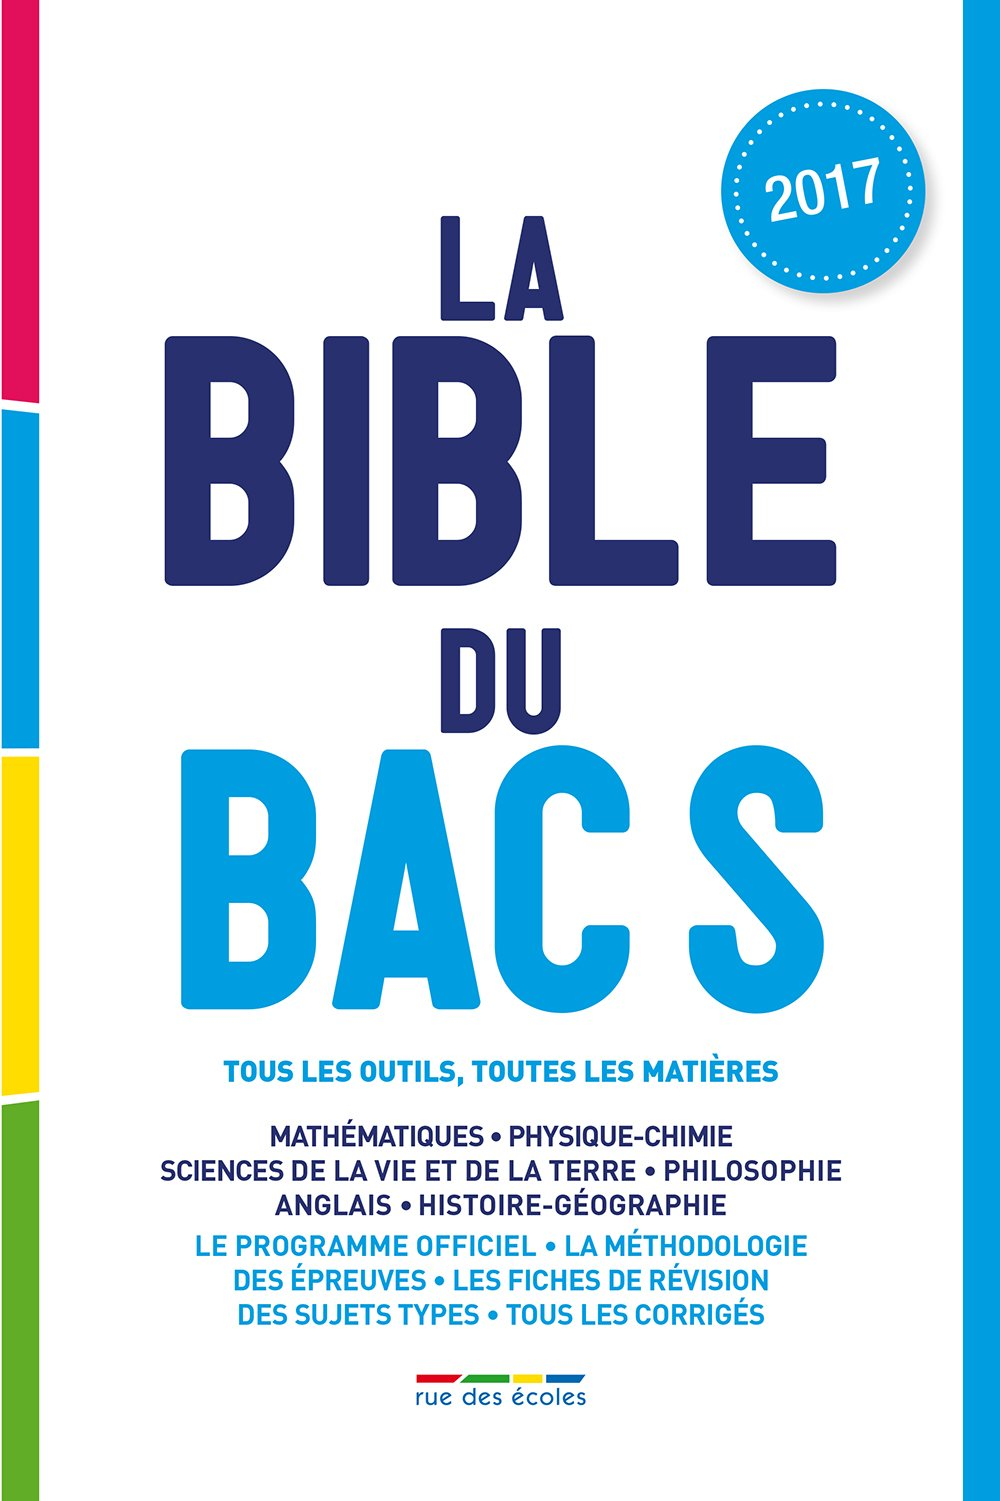 La Bible du bac S - Edition 2017 (French Edition) (French) Paperback – January 11, 2017